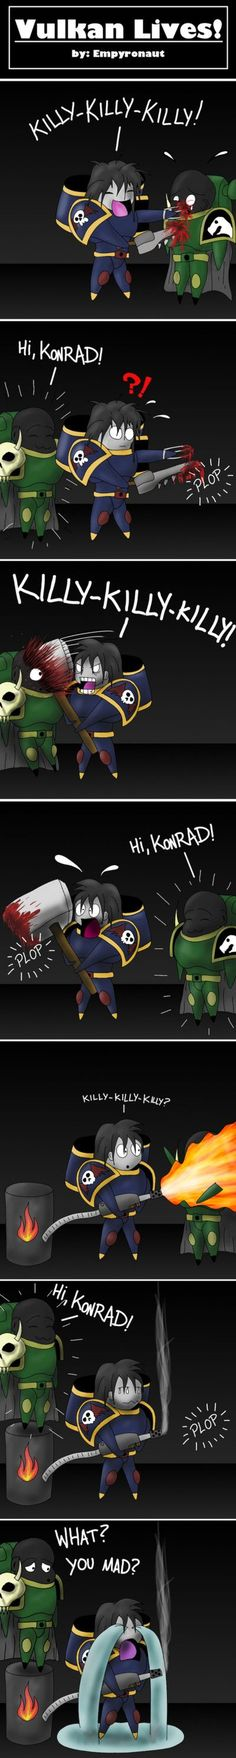 wh-humor-Wh-Other-Warhammer-40000-Wh-Песочница-3564043.jpeg (400×2980)